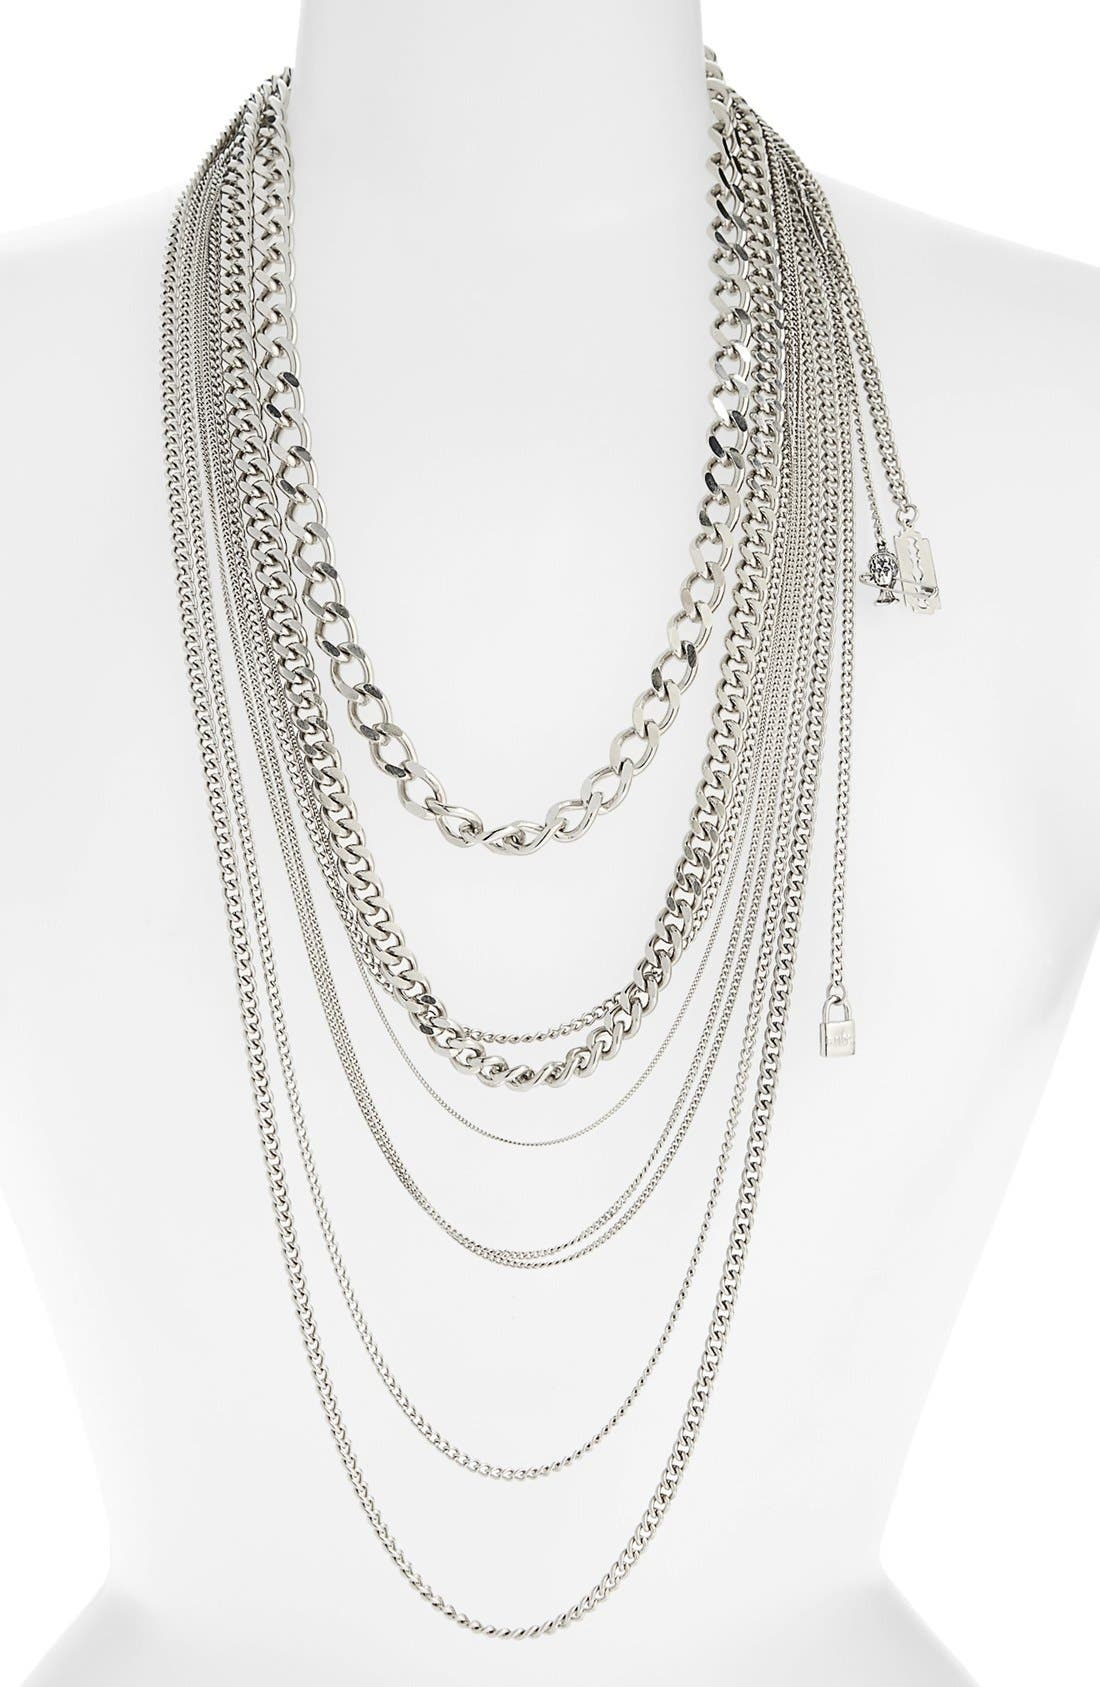 Alternate Image 1 Selected - Tom Binns 'Charm Offensive' Multistrand Chain Necklace